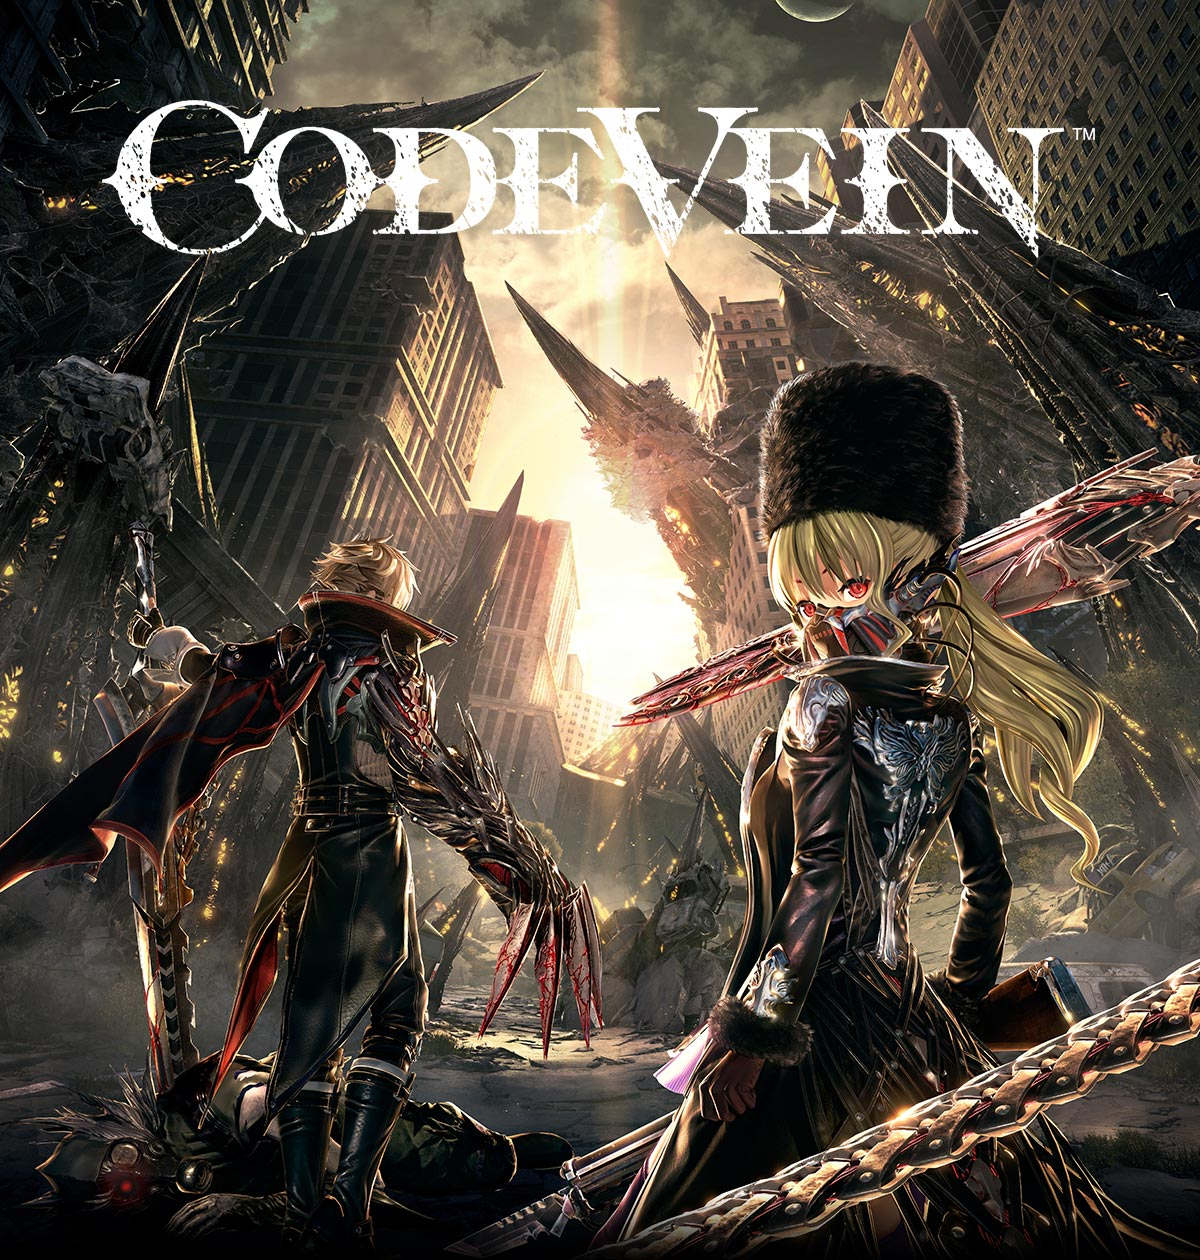 Code Vein for PlayStation 4 and Xbox One. Available to pre-order now